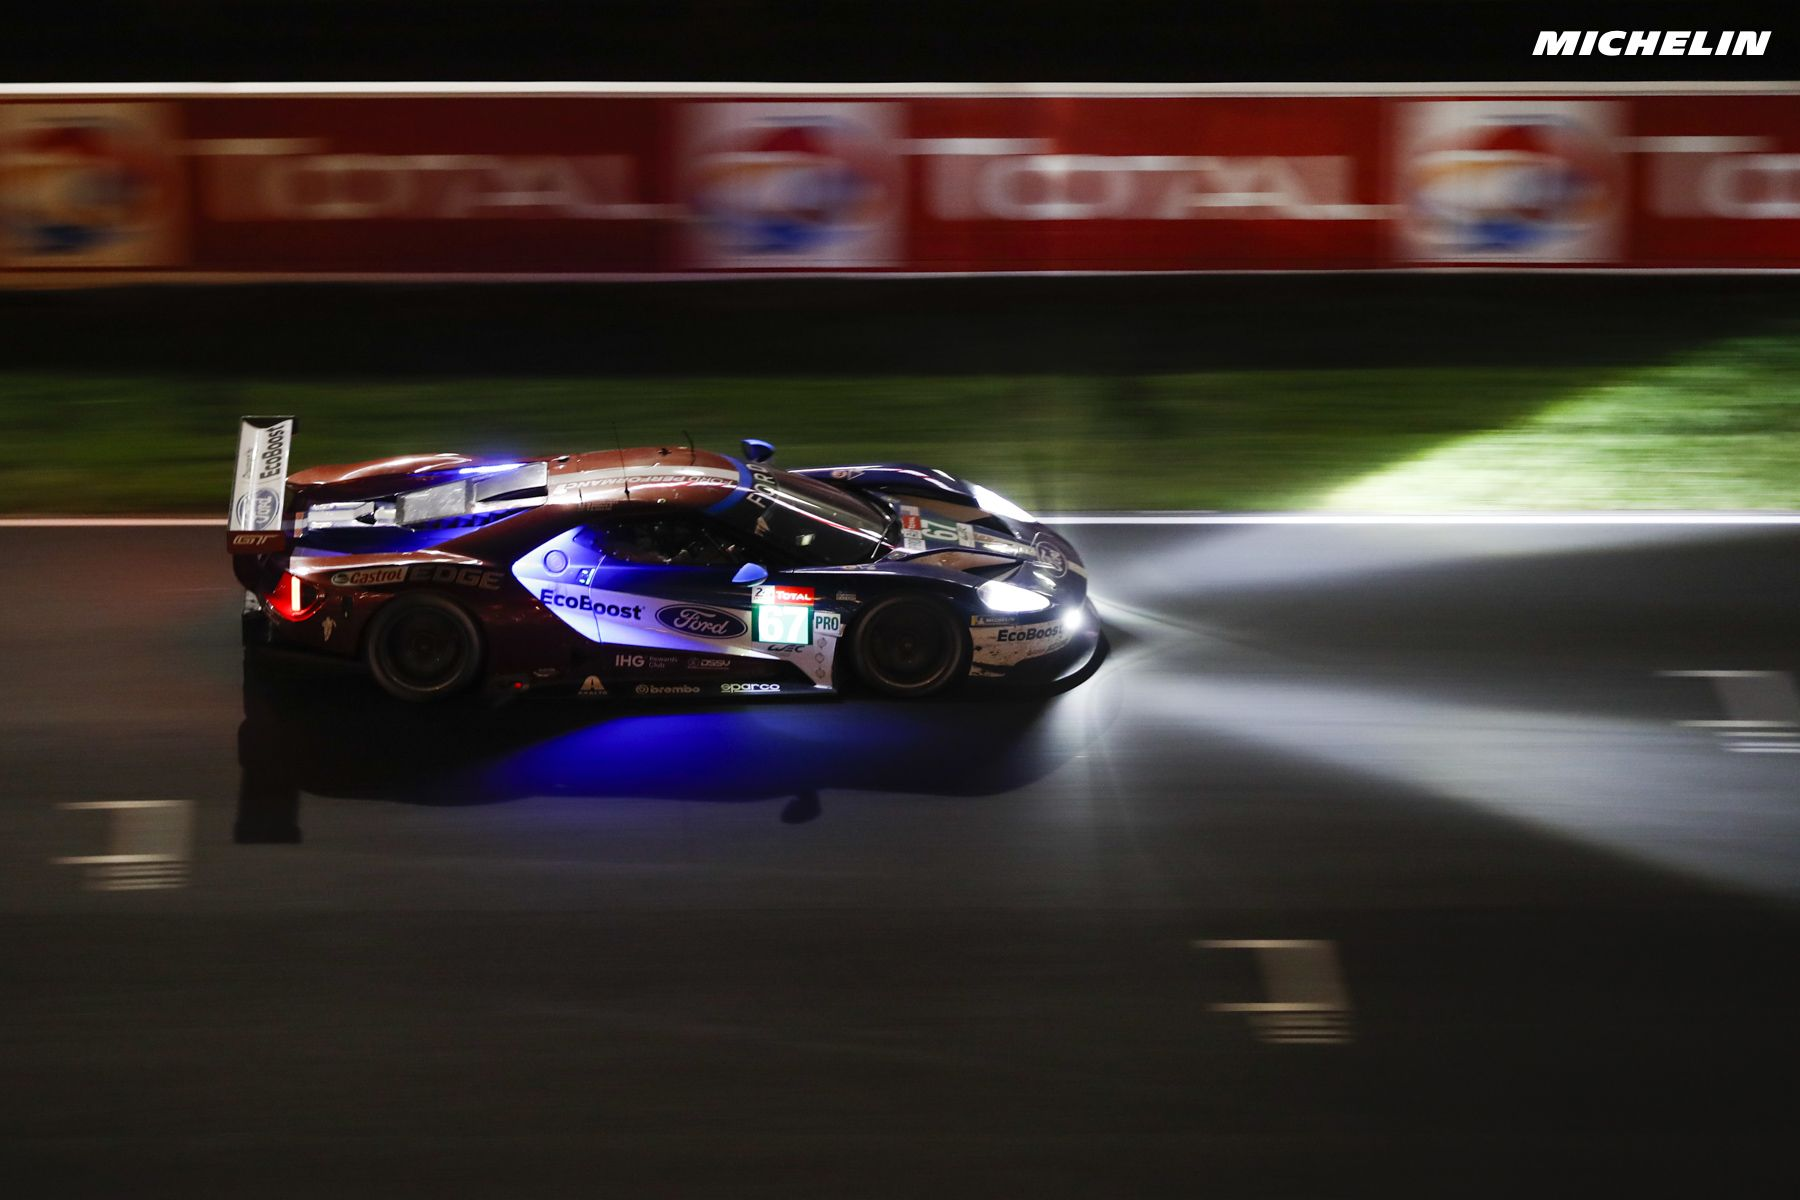 Pin By T L Also On Interesting Randoms Ford Gt Le Mans Racing Team